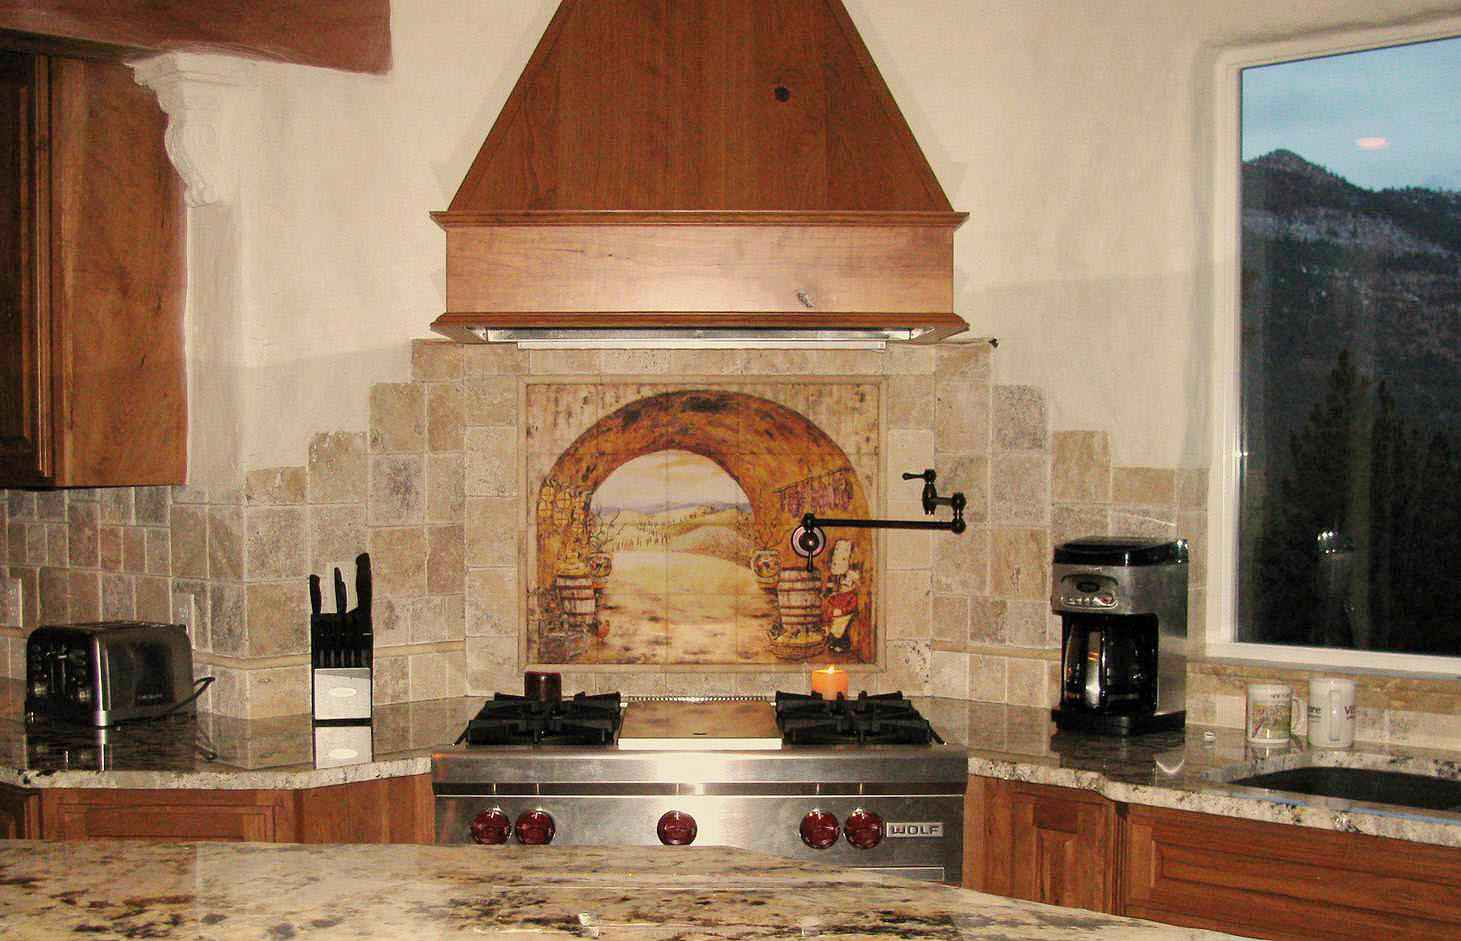 Backsplash design ideas for your kitchen Backsplash photos kitchen ideas